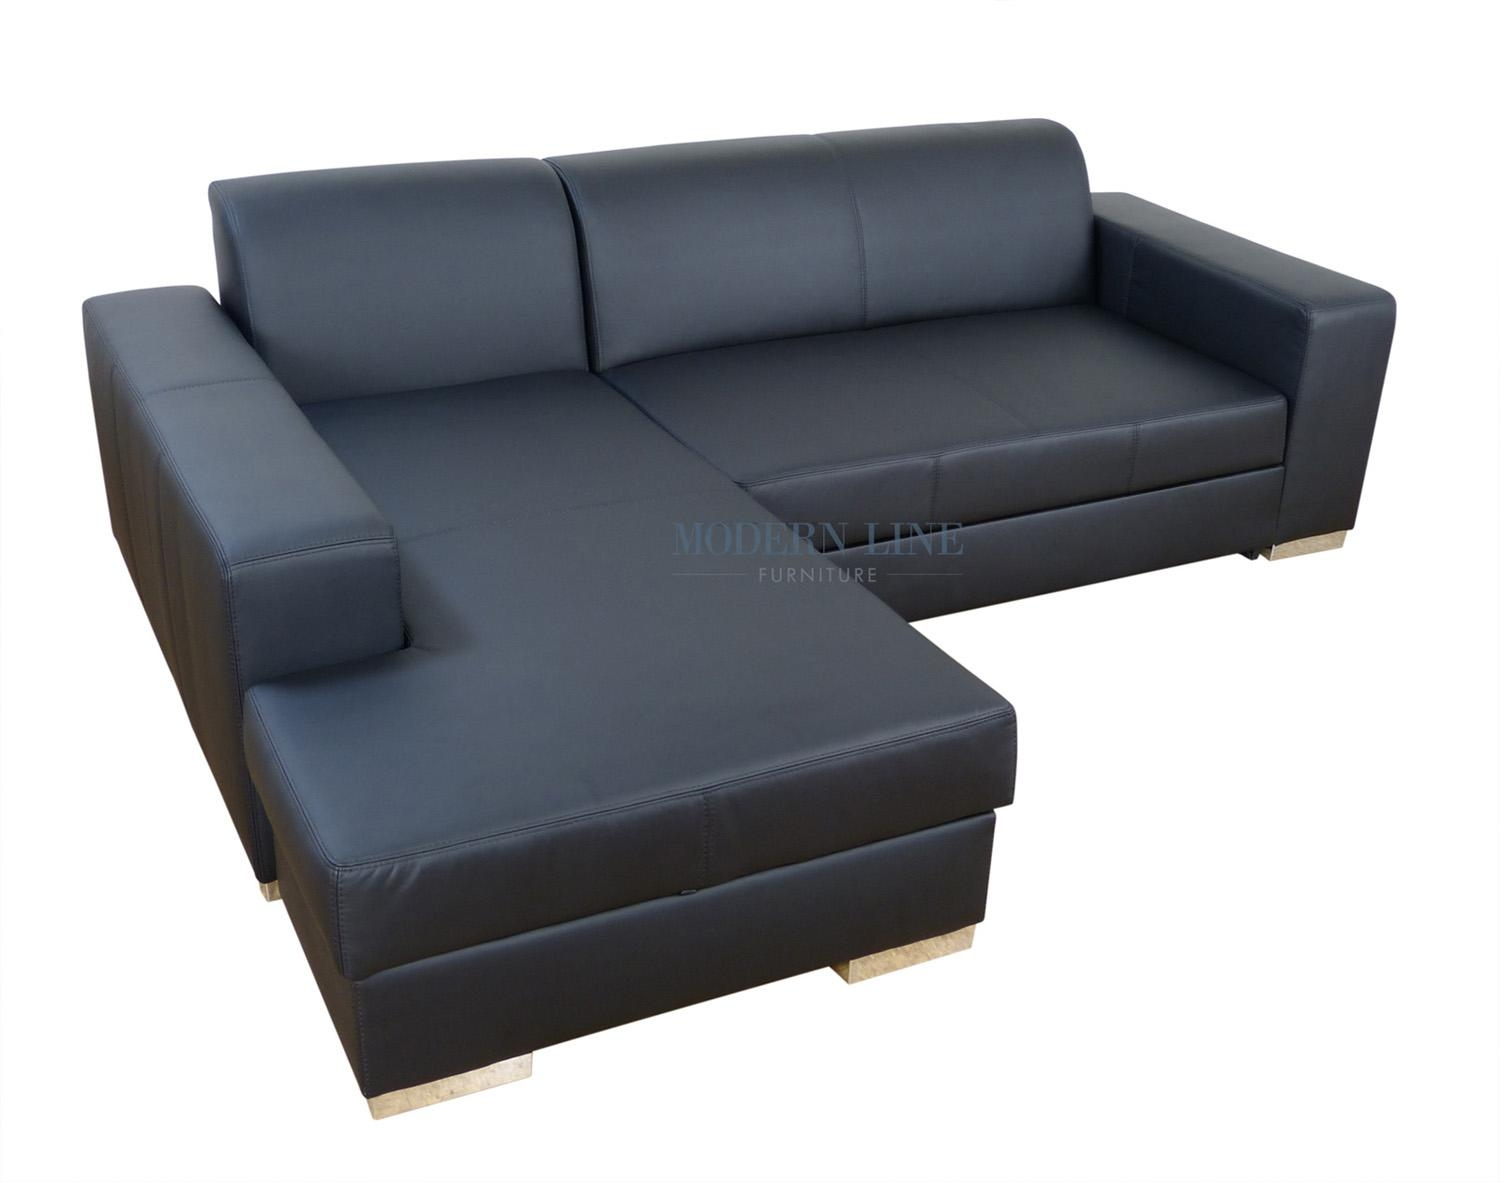 modern line furniture sofa sleepers mattress pad for sleeper 20 inspirations sectional with storage ideas